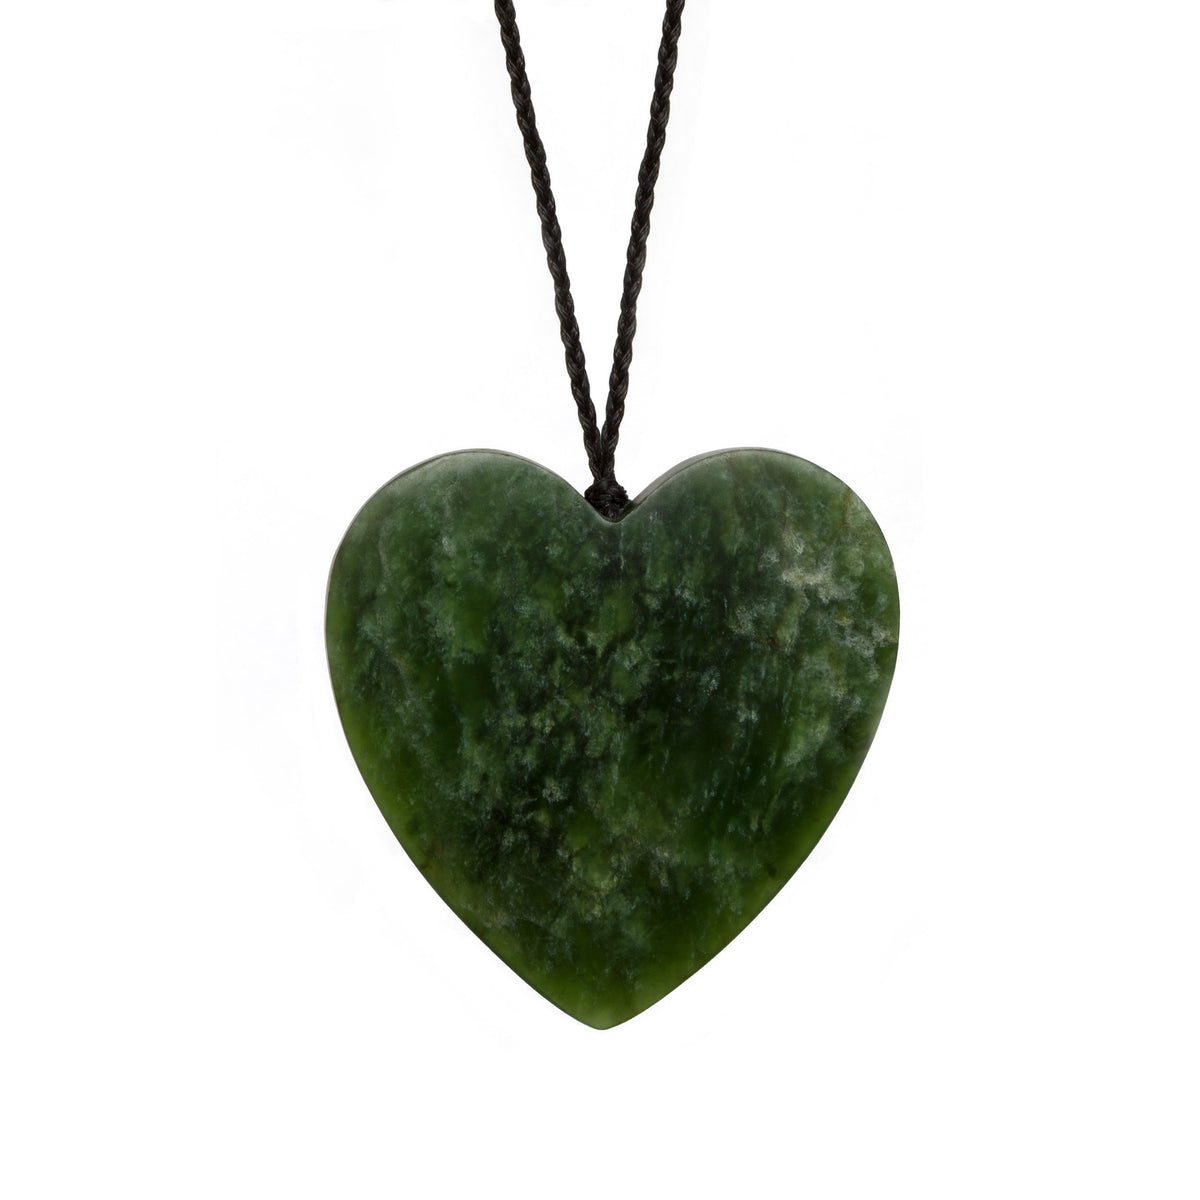 50mm x 50mm / New Zealand Pounamu // JAMESHP328P-C